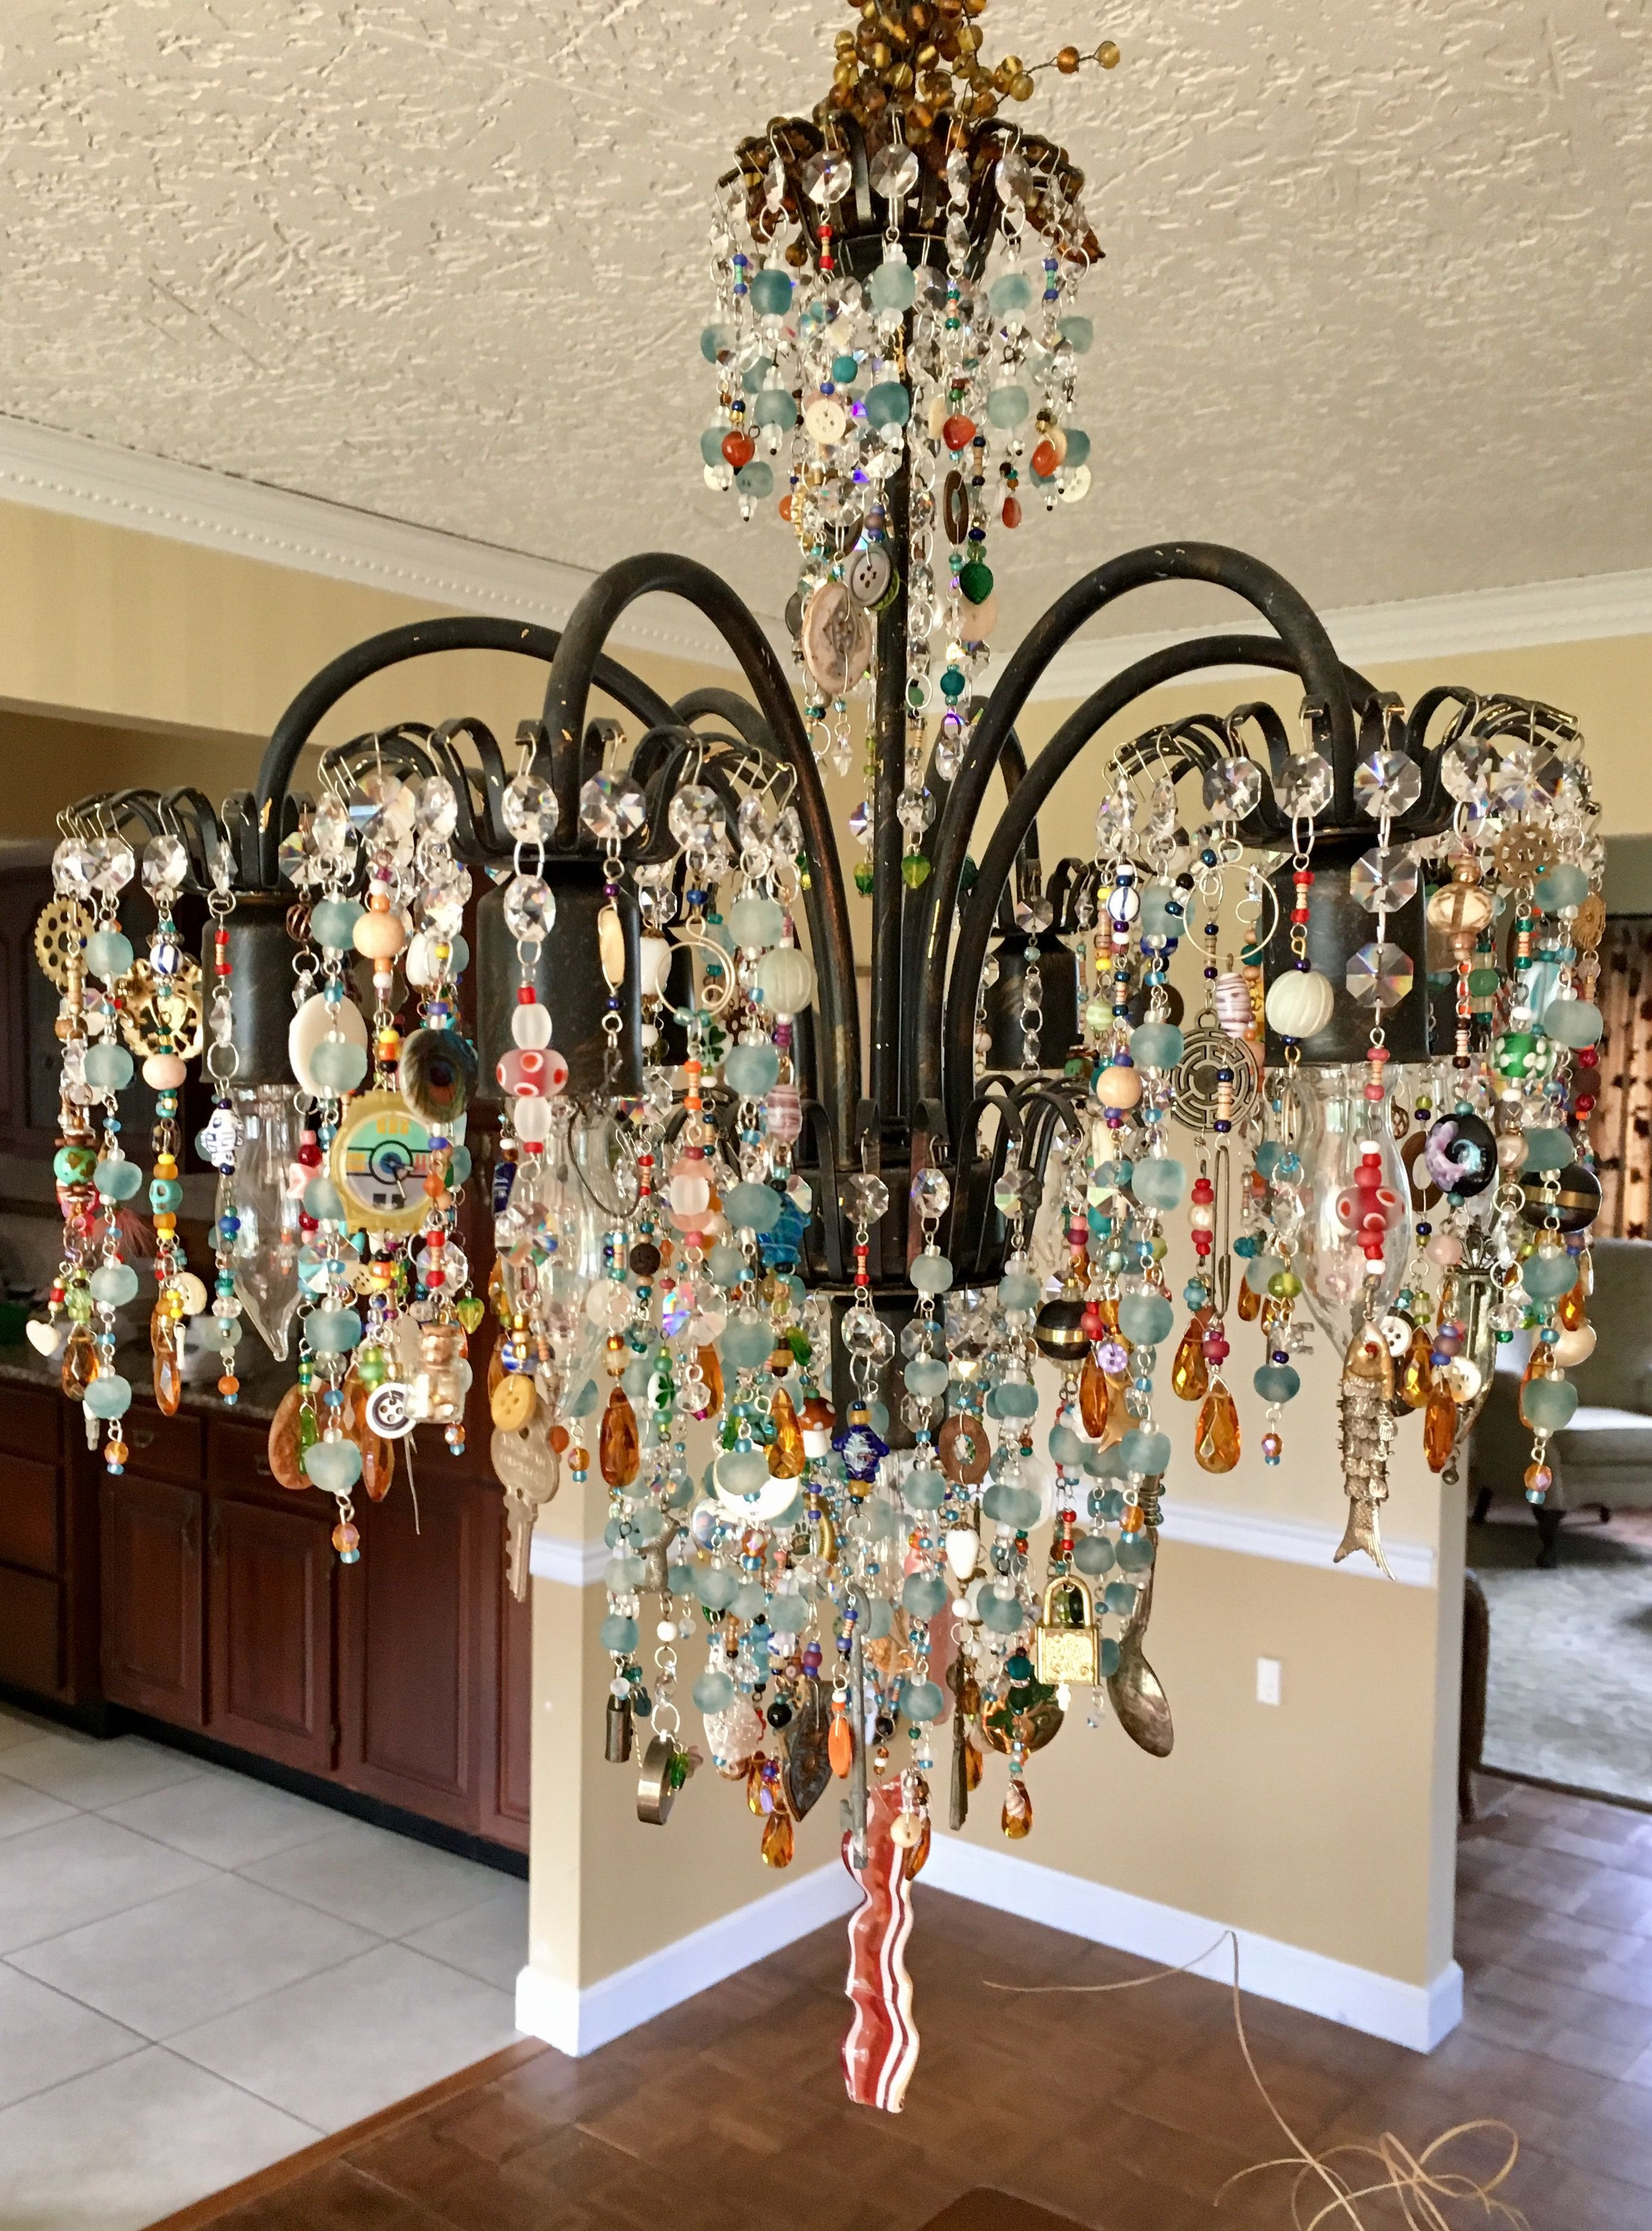 Upcycled Chandelier With Found Objects Shells Watches Fishing